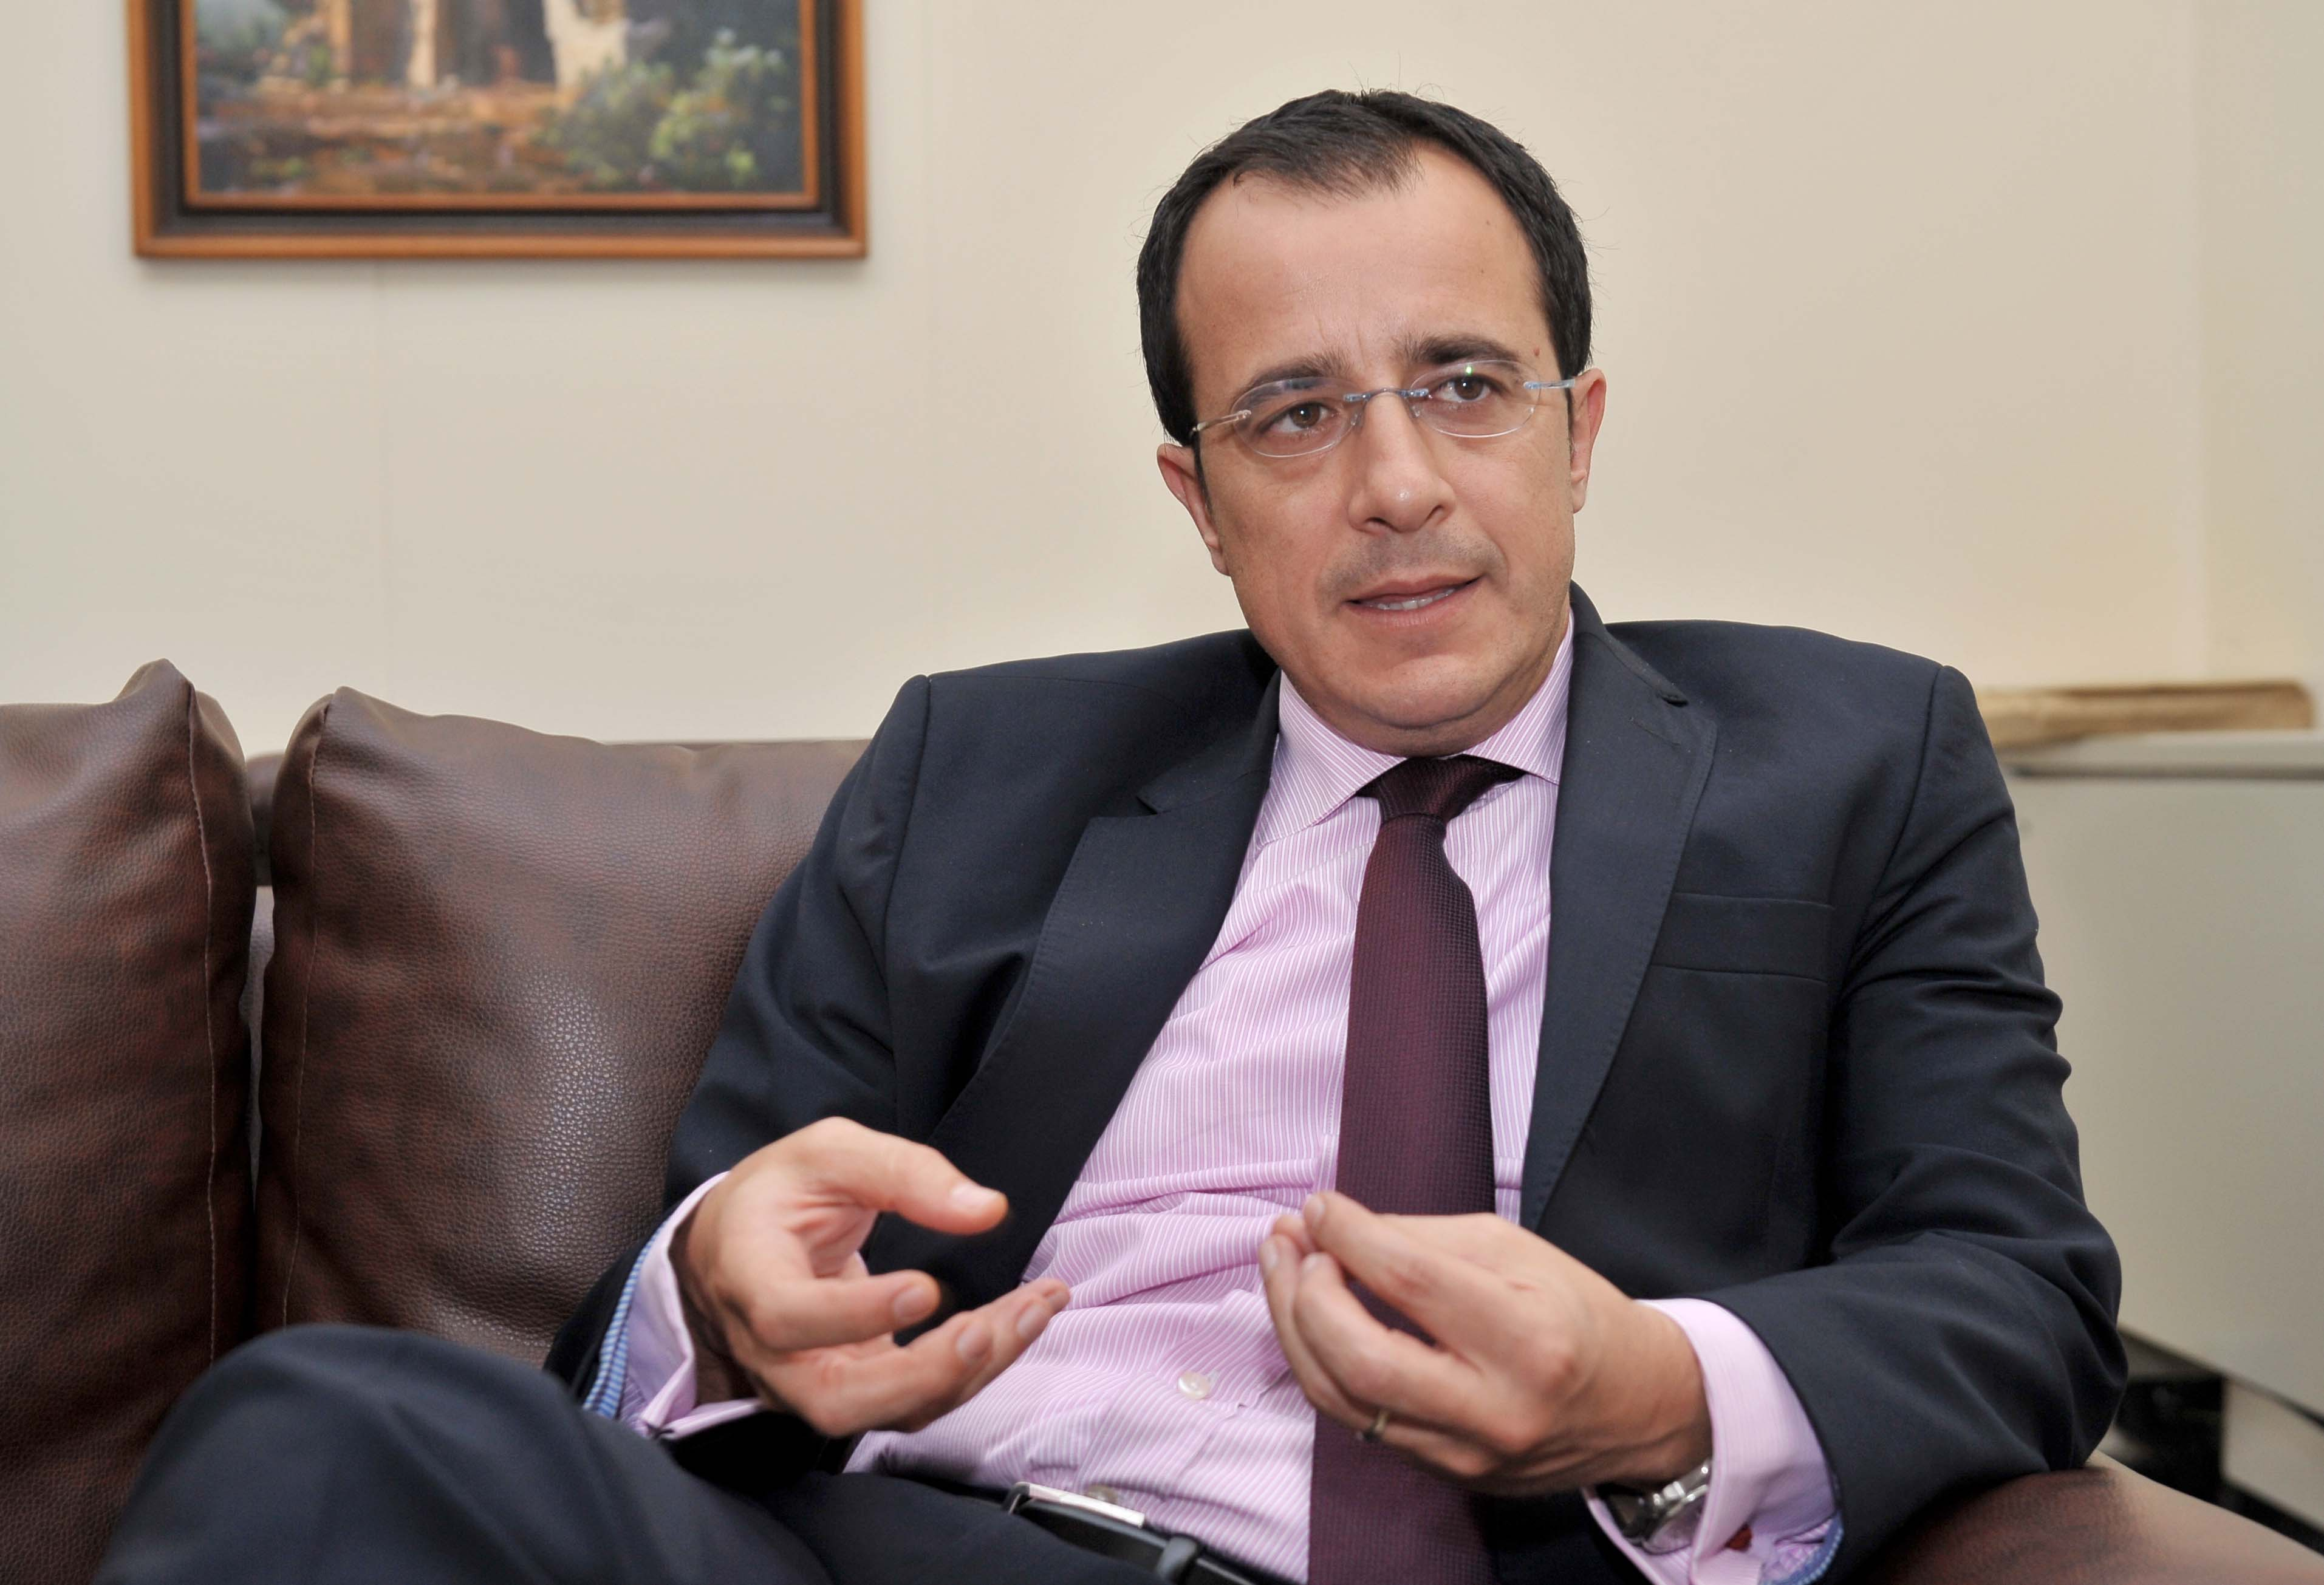 Cypriot Foreign Minister: Perhaps the Commission's most critical report on Turkey since 2005